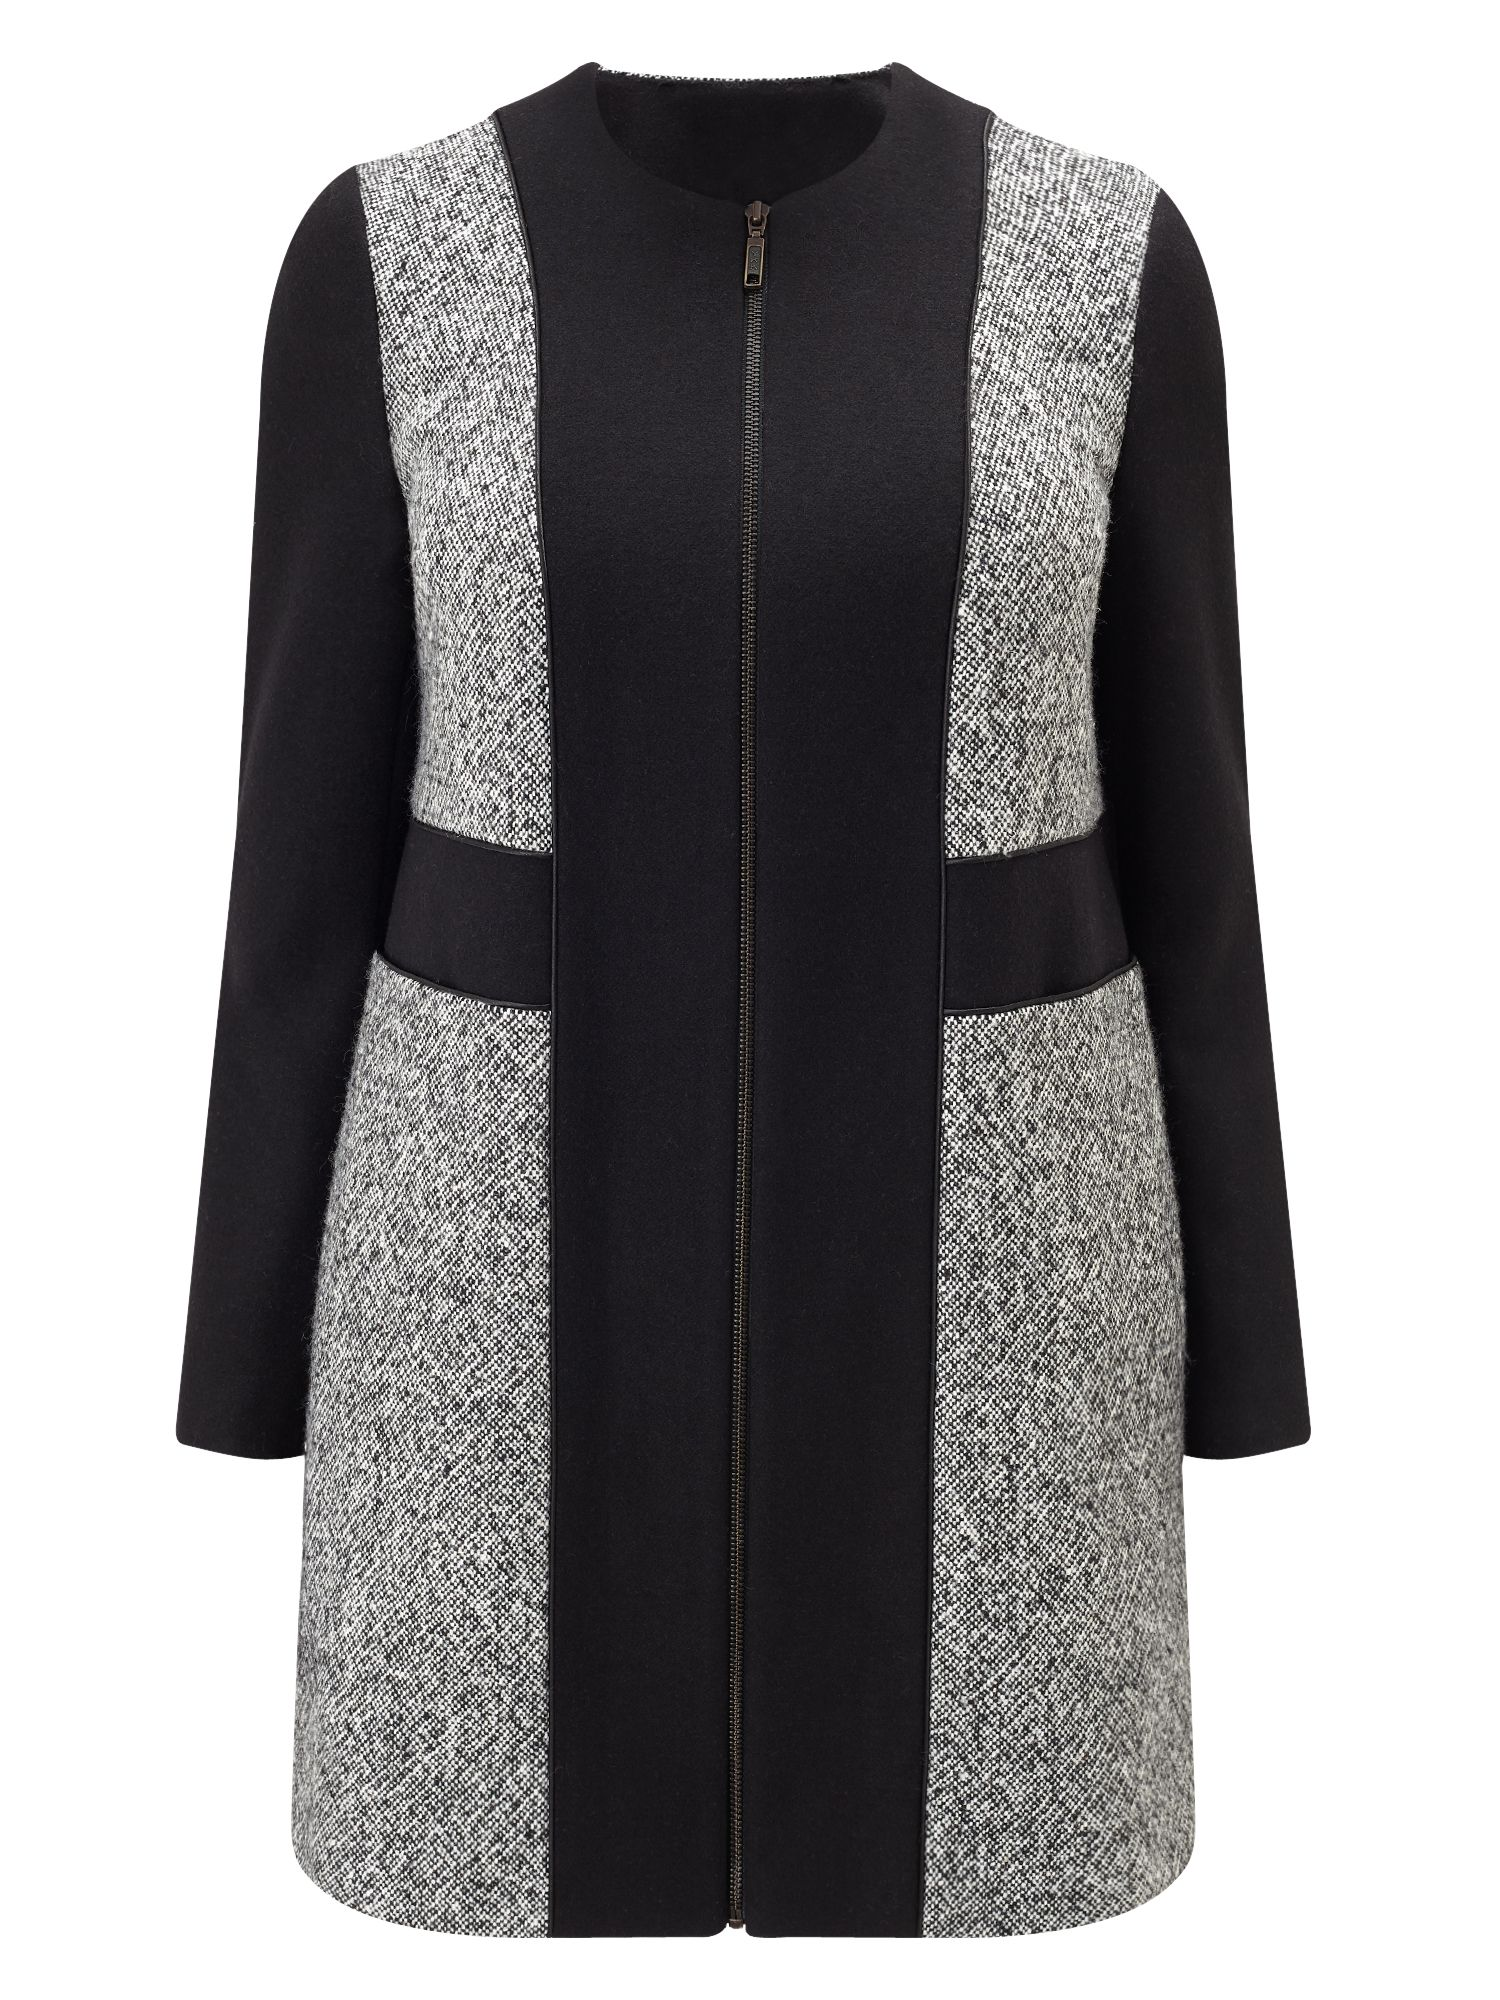 Studio 8 Gwen Coat, Black/White